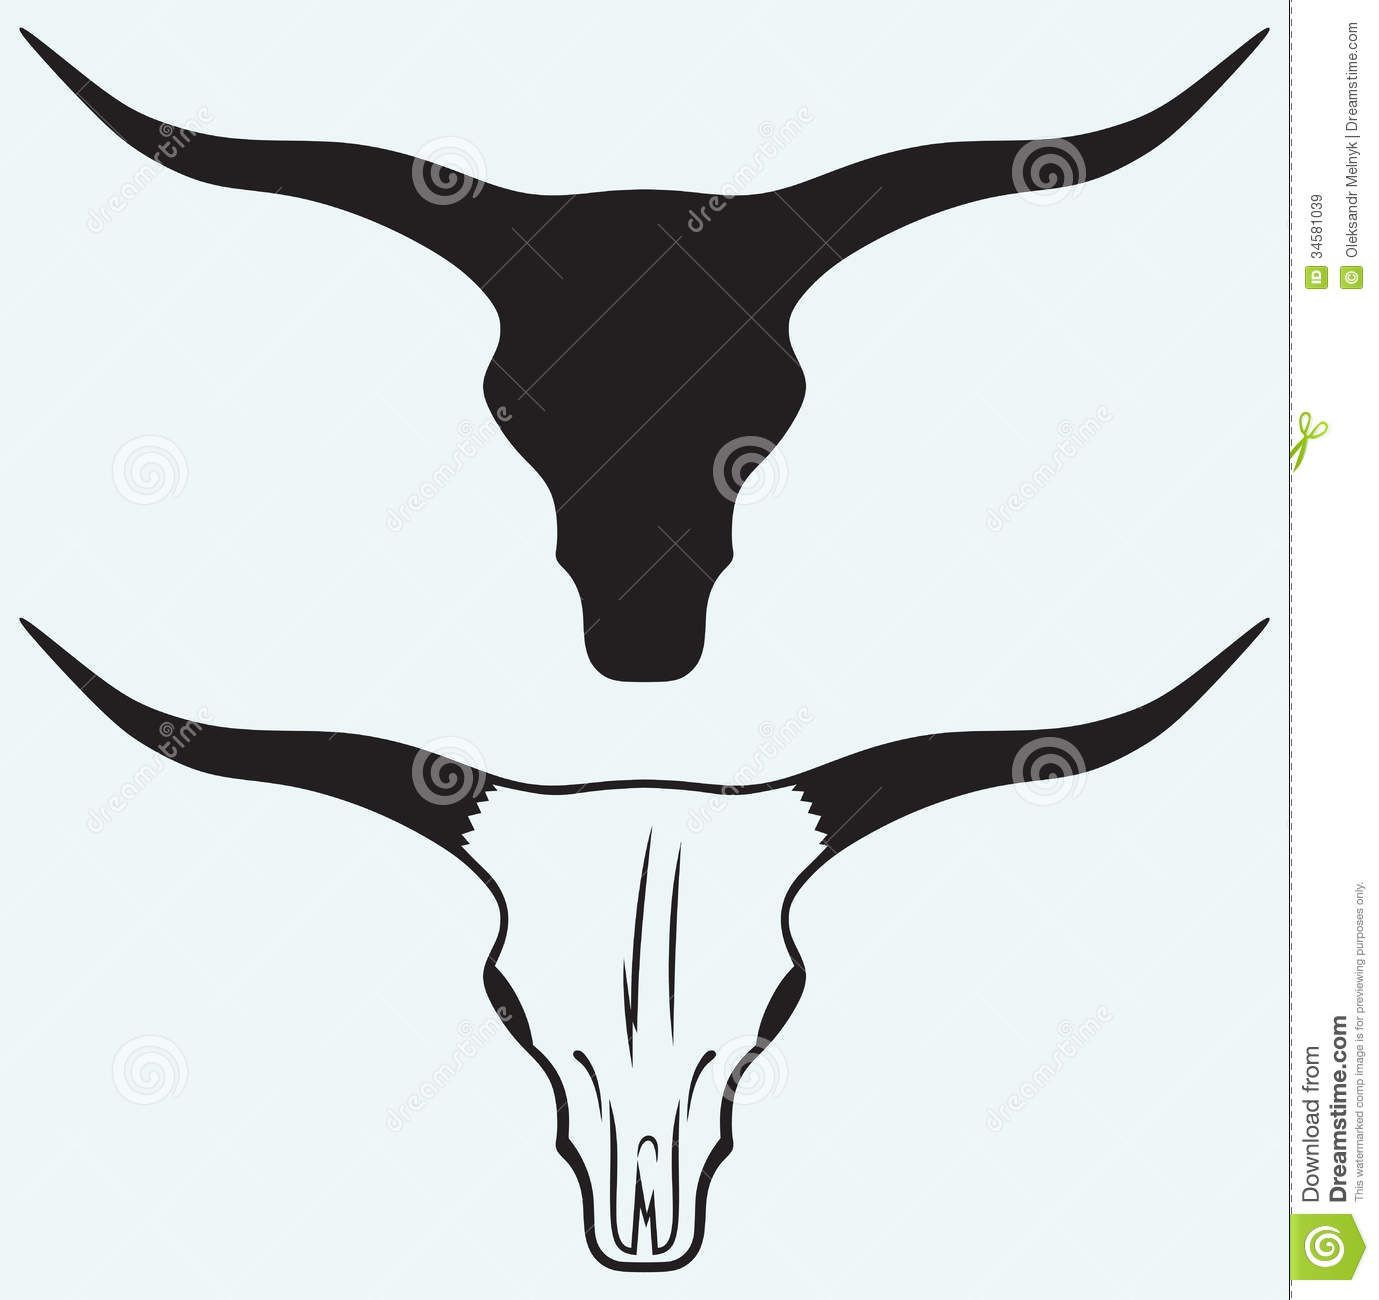 1379x1300 Texas Longhorn Bull Royalty Free Cliparts Vectors And Stock Lively